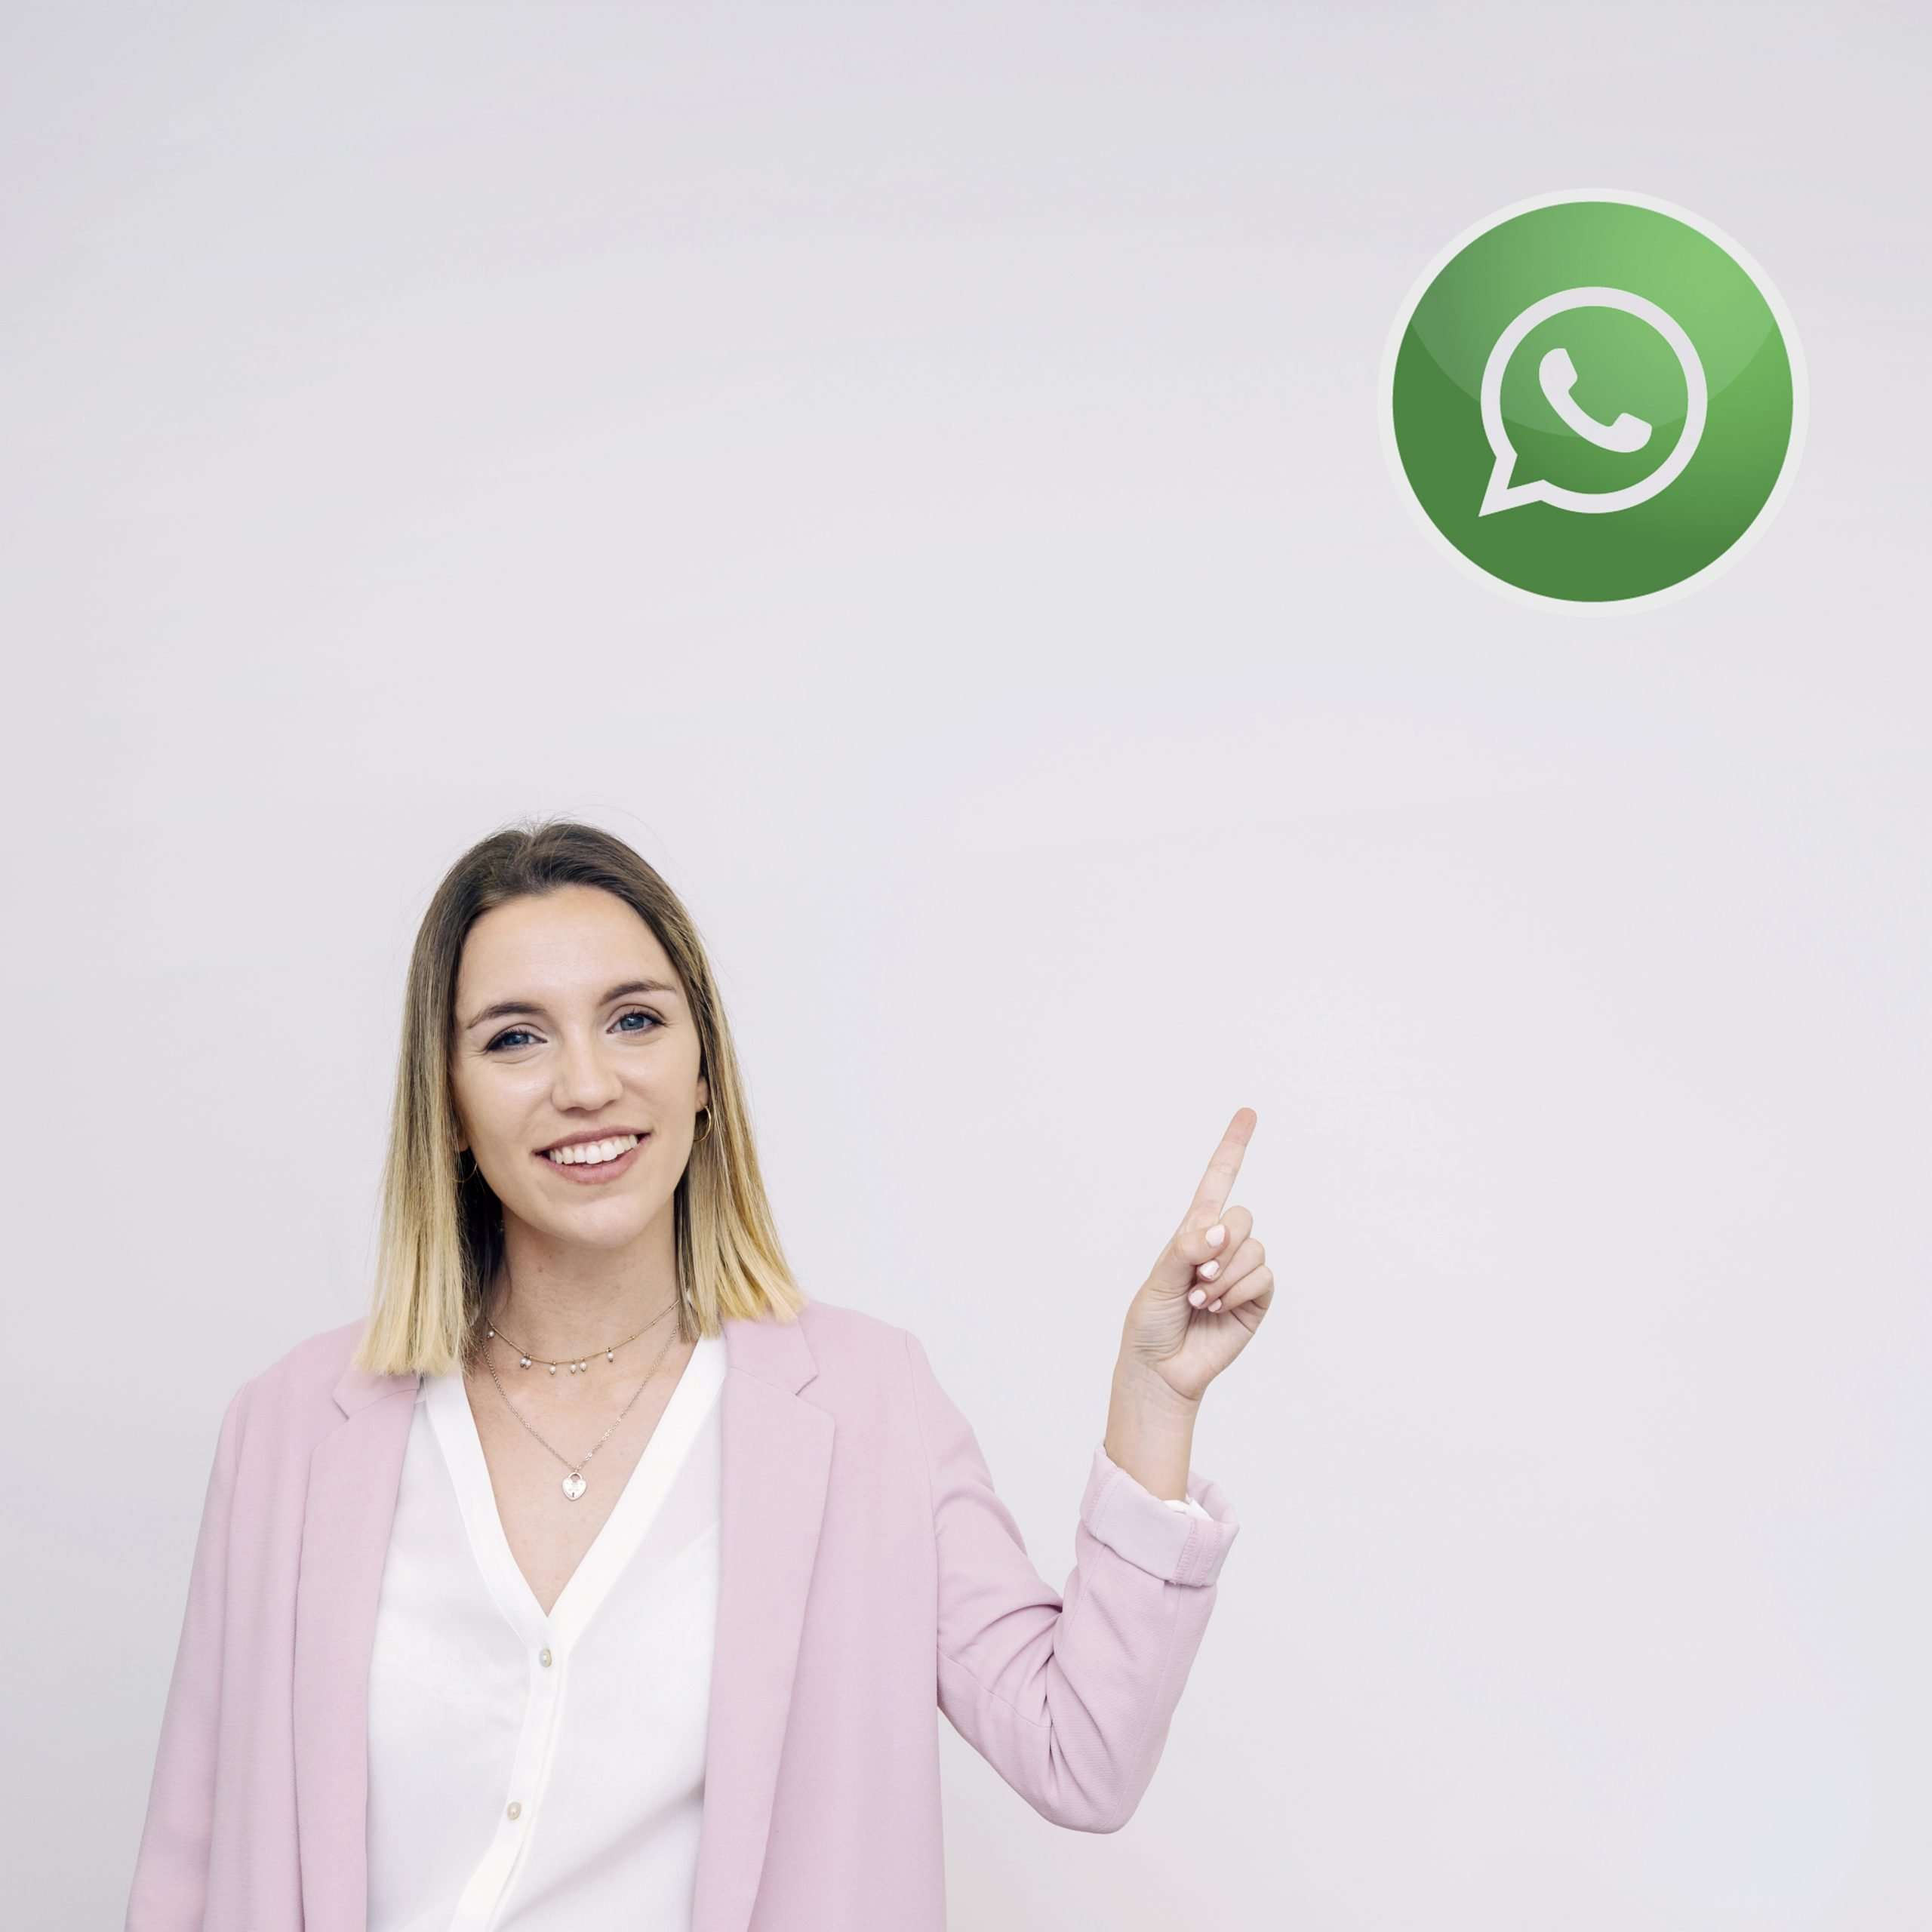 Whatsapp marketing inmobiliario, WhatsApp para negocios inmobiliarios, marketing inmobiliario en WhatsApp, WhatsApp para inmobiliarias